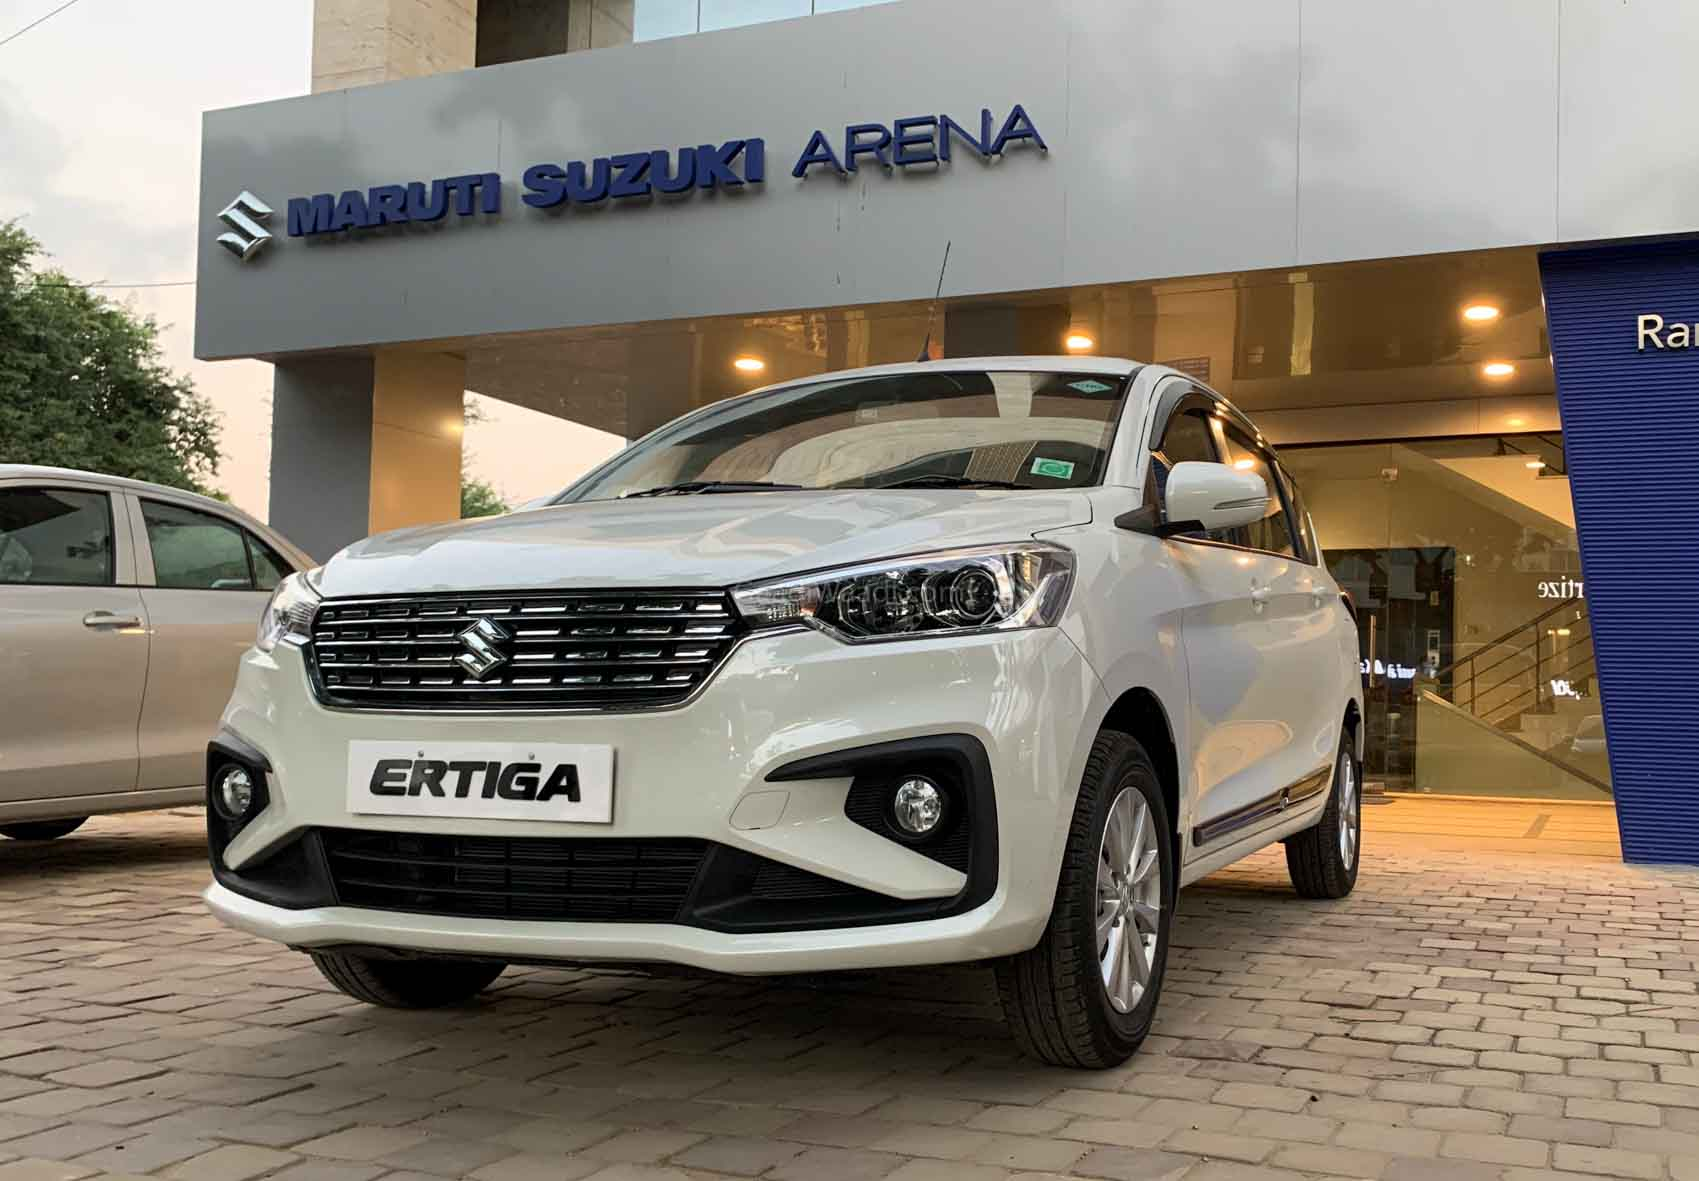 Maruti Suzuki to improve market share with multiple new product launches in 2022